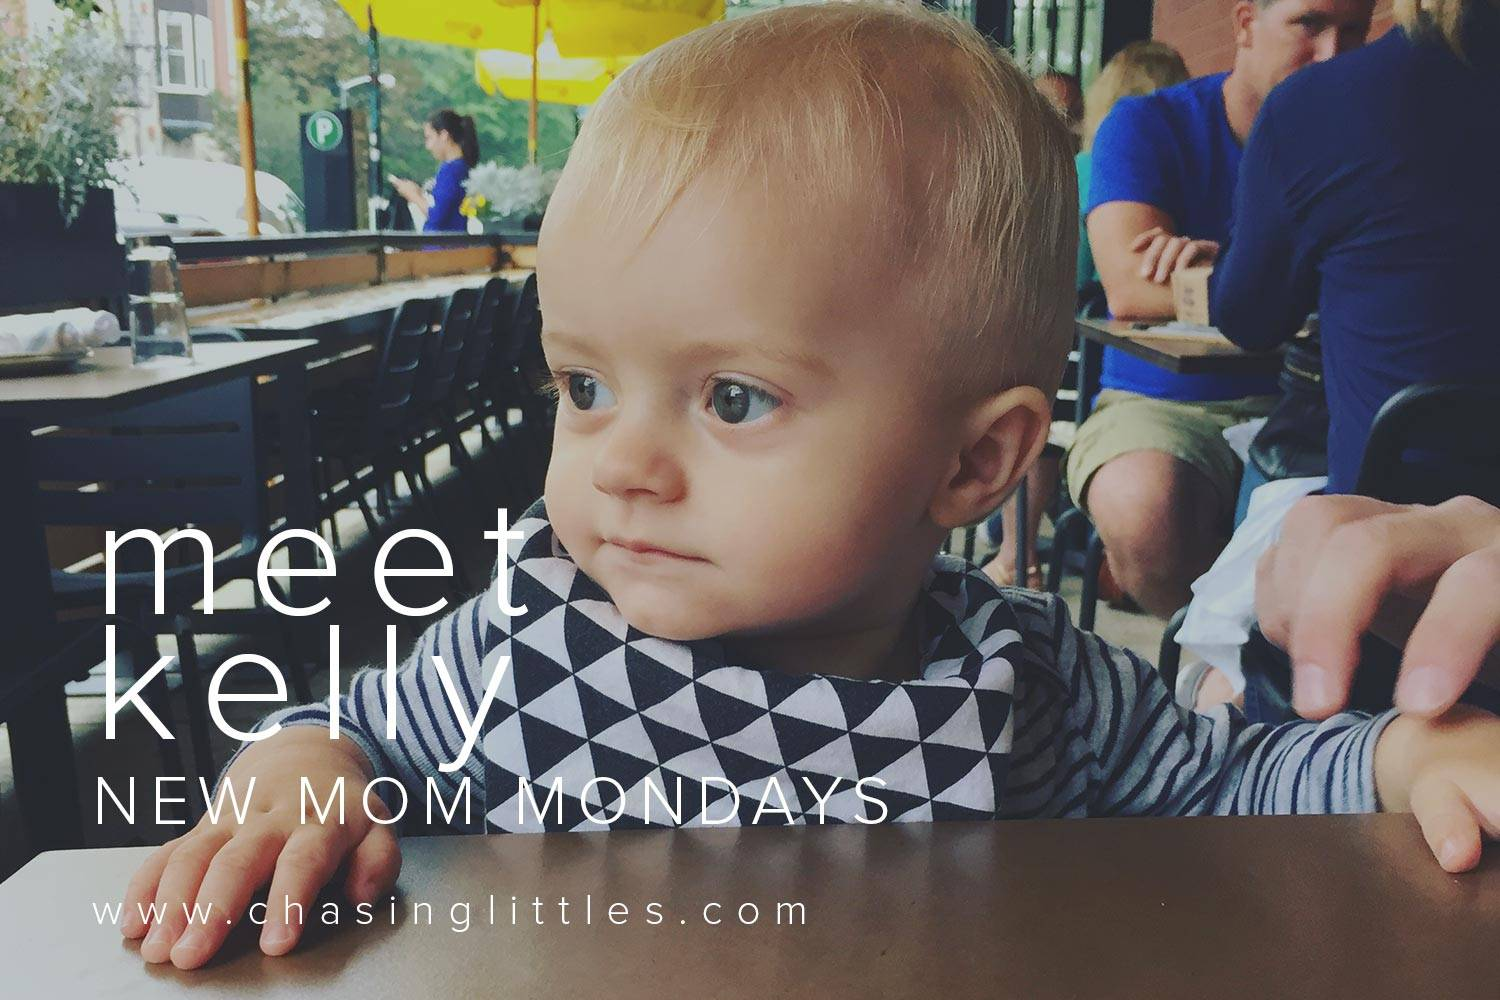 NEW MOM MONDAYS CHASING LITTLES